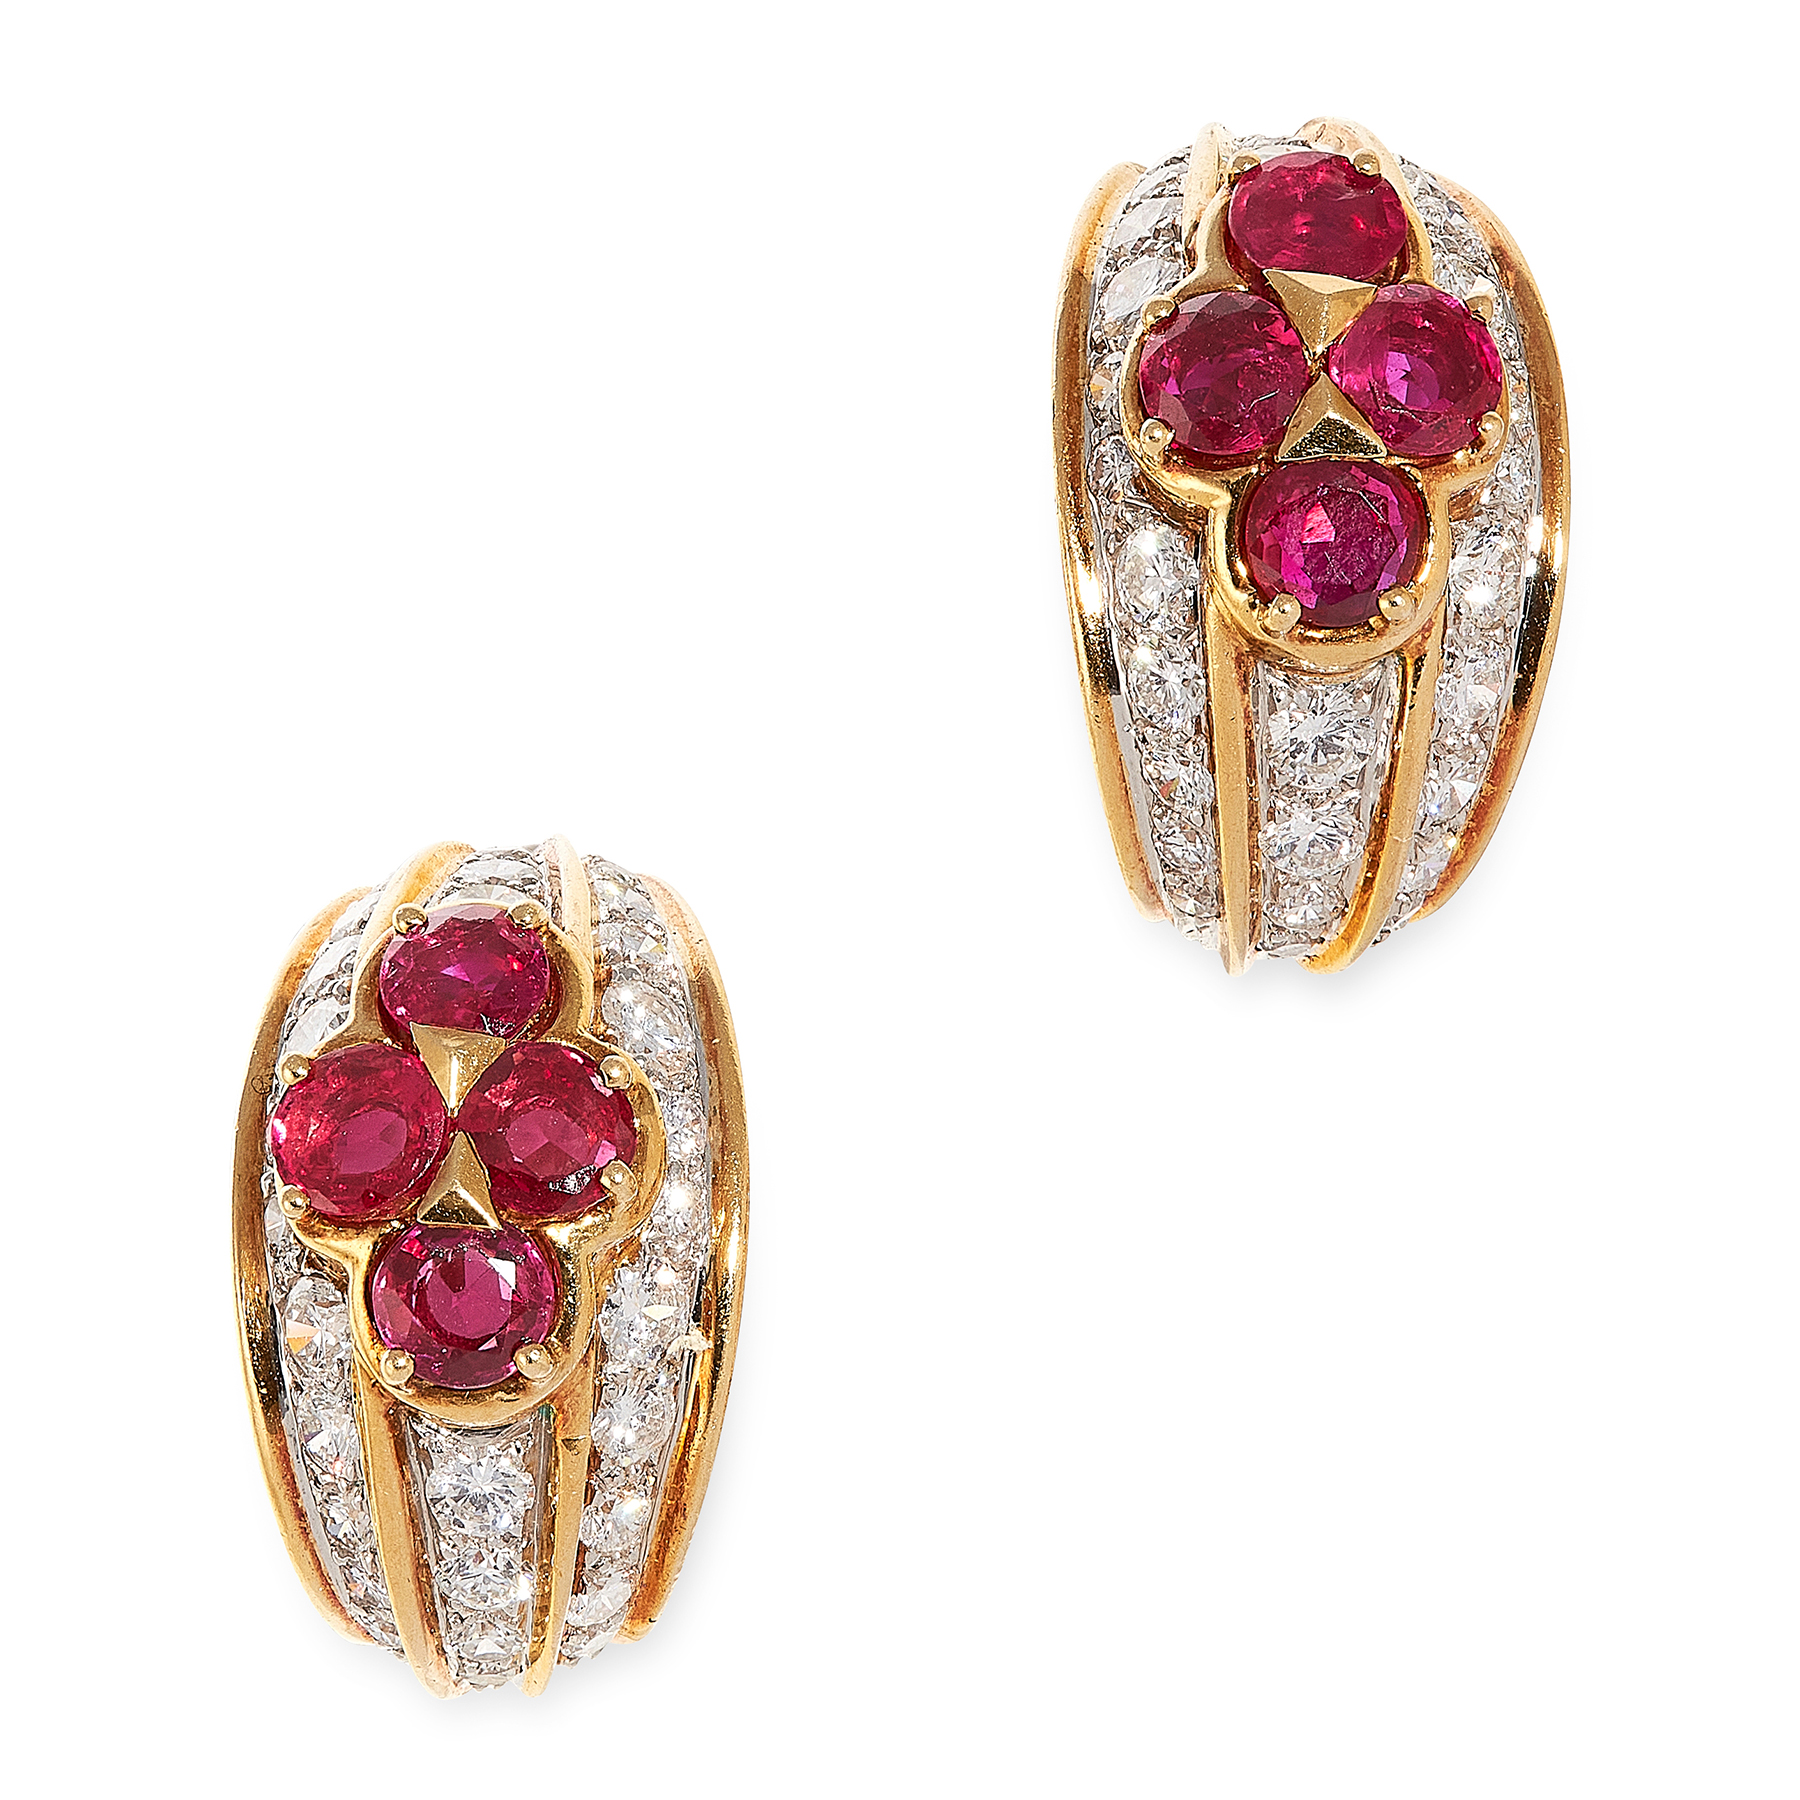 A PAIR OF VINTAGE RUBY AND DIAMOND CLIP EARRINGS, VAN CLEEF & ARPELS in 18ct yellow gold, each of